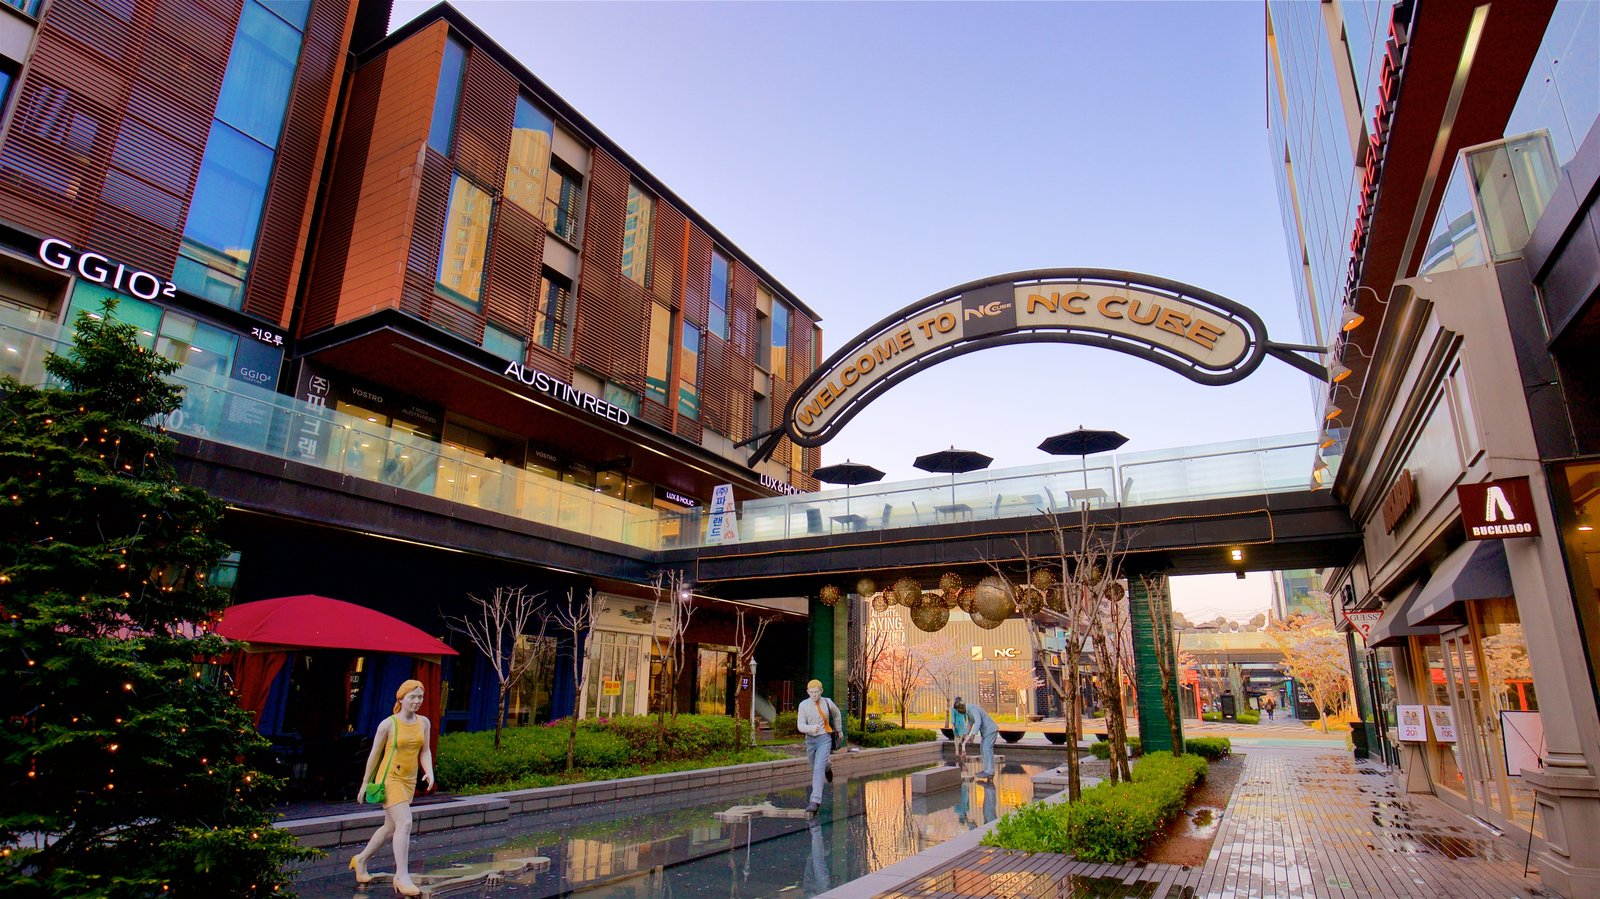 NC Cube Canal Walk showing outdoor art, signage and central business district